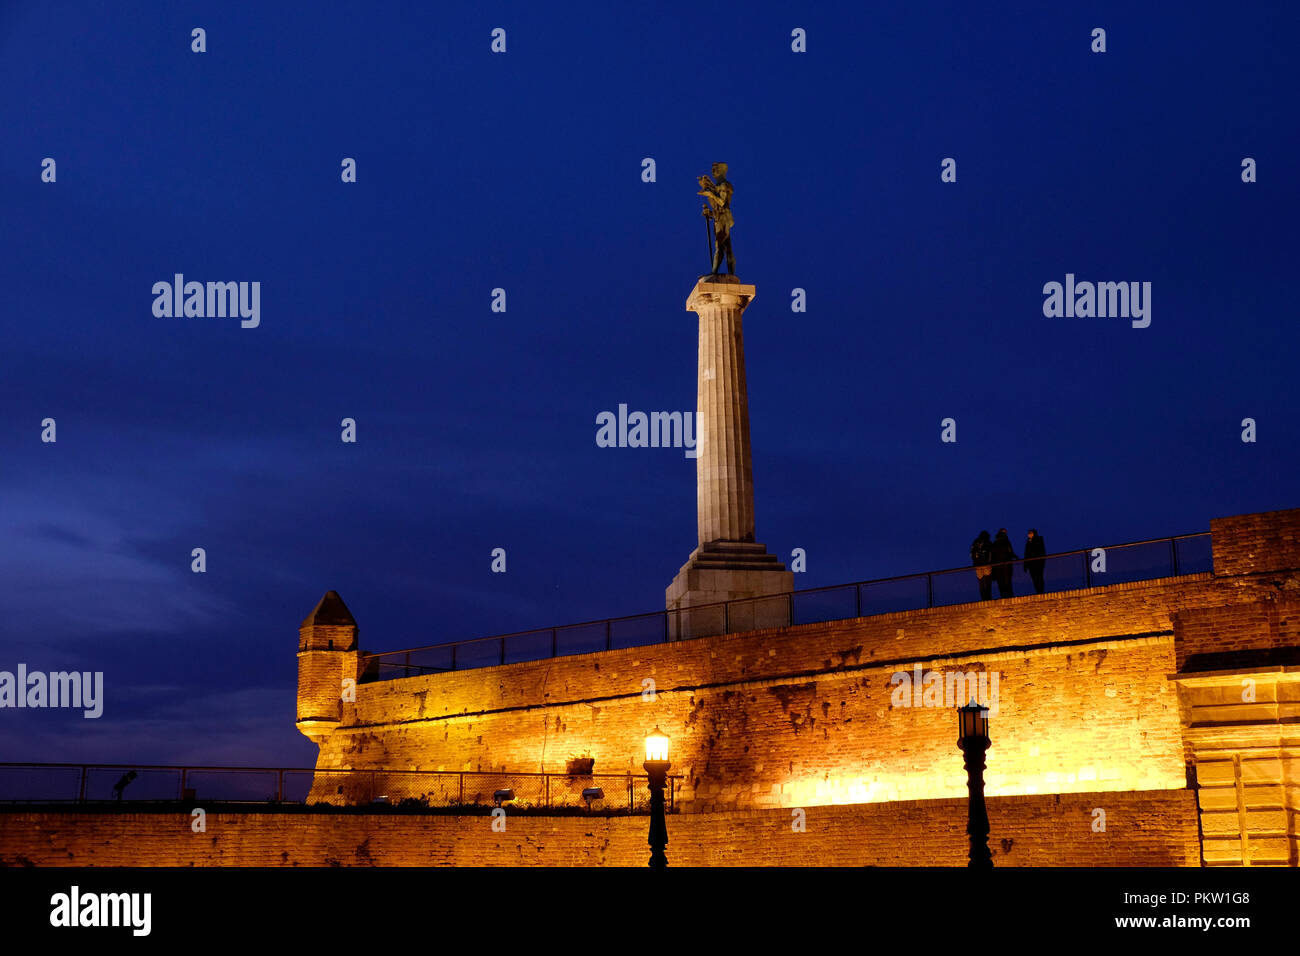 View of he Pobednik monument or the Statue of Victor by Ivan Mestrovic set up in 1928 to commemorate Serbia's victory over Ottoman and Austro-Hungarian Empire during the Balkan Wars and the First World War located at the Kalemegdan fortress in the city of Belgrade capital of the Republic of Serbia - Stock Image